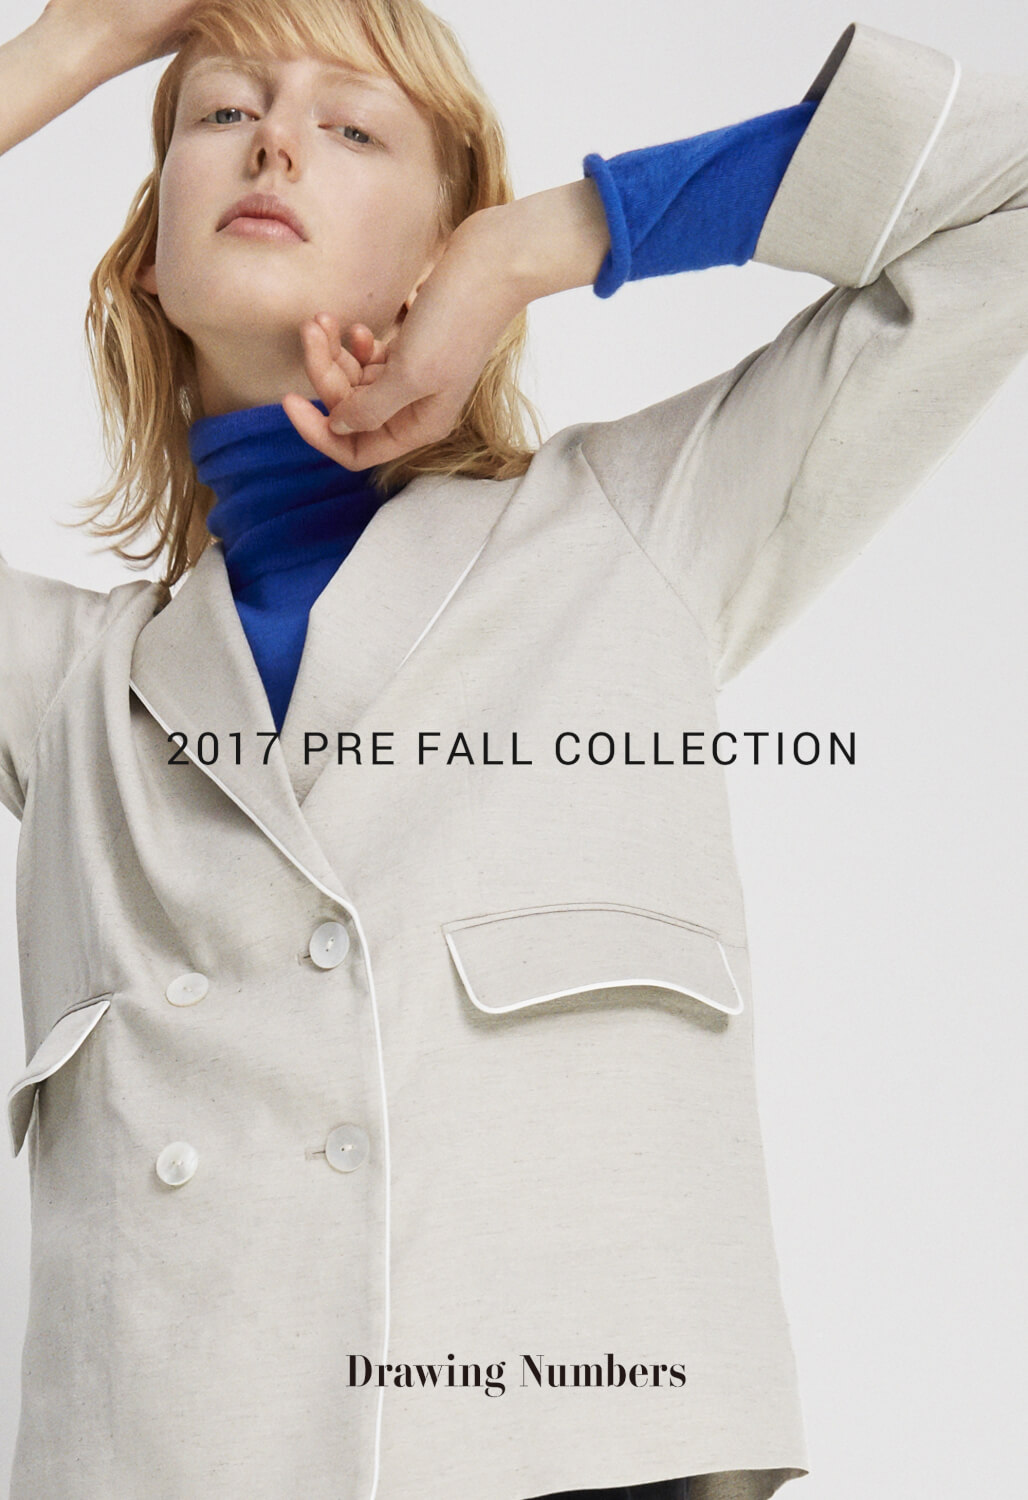 2017 PRE FALL COLLECTION 1